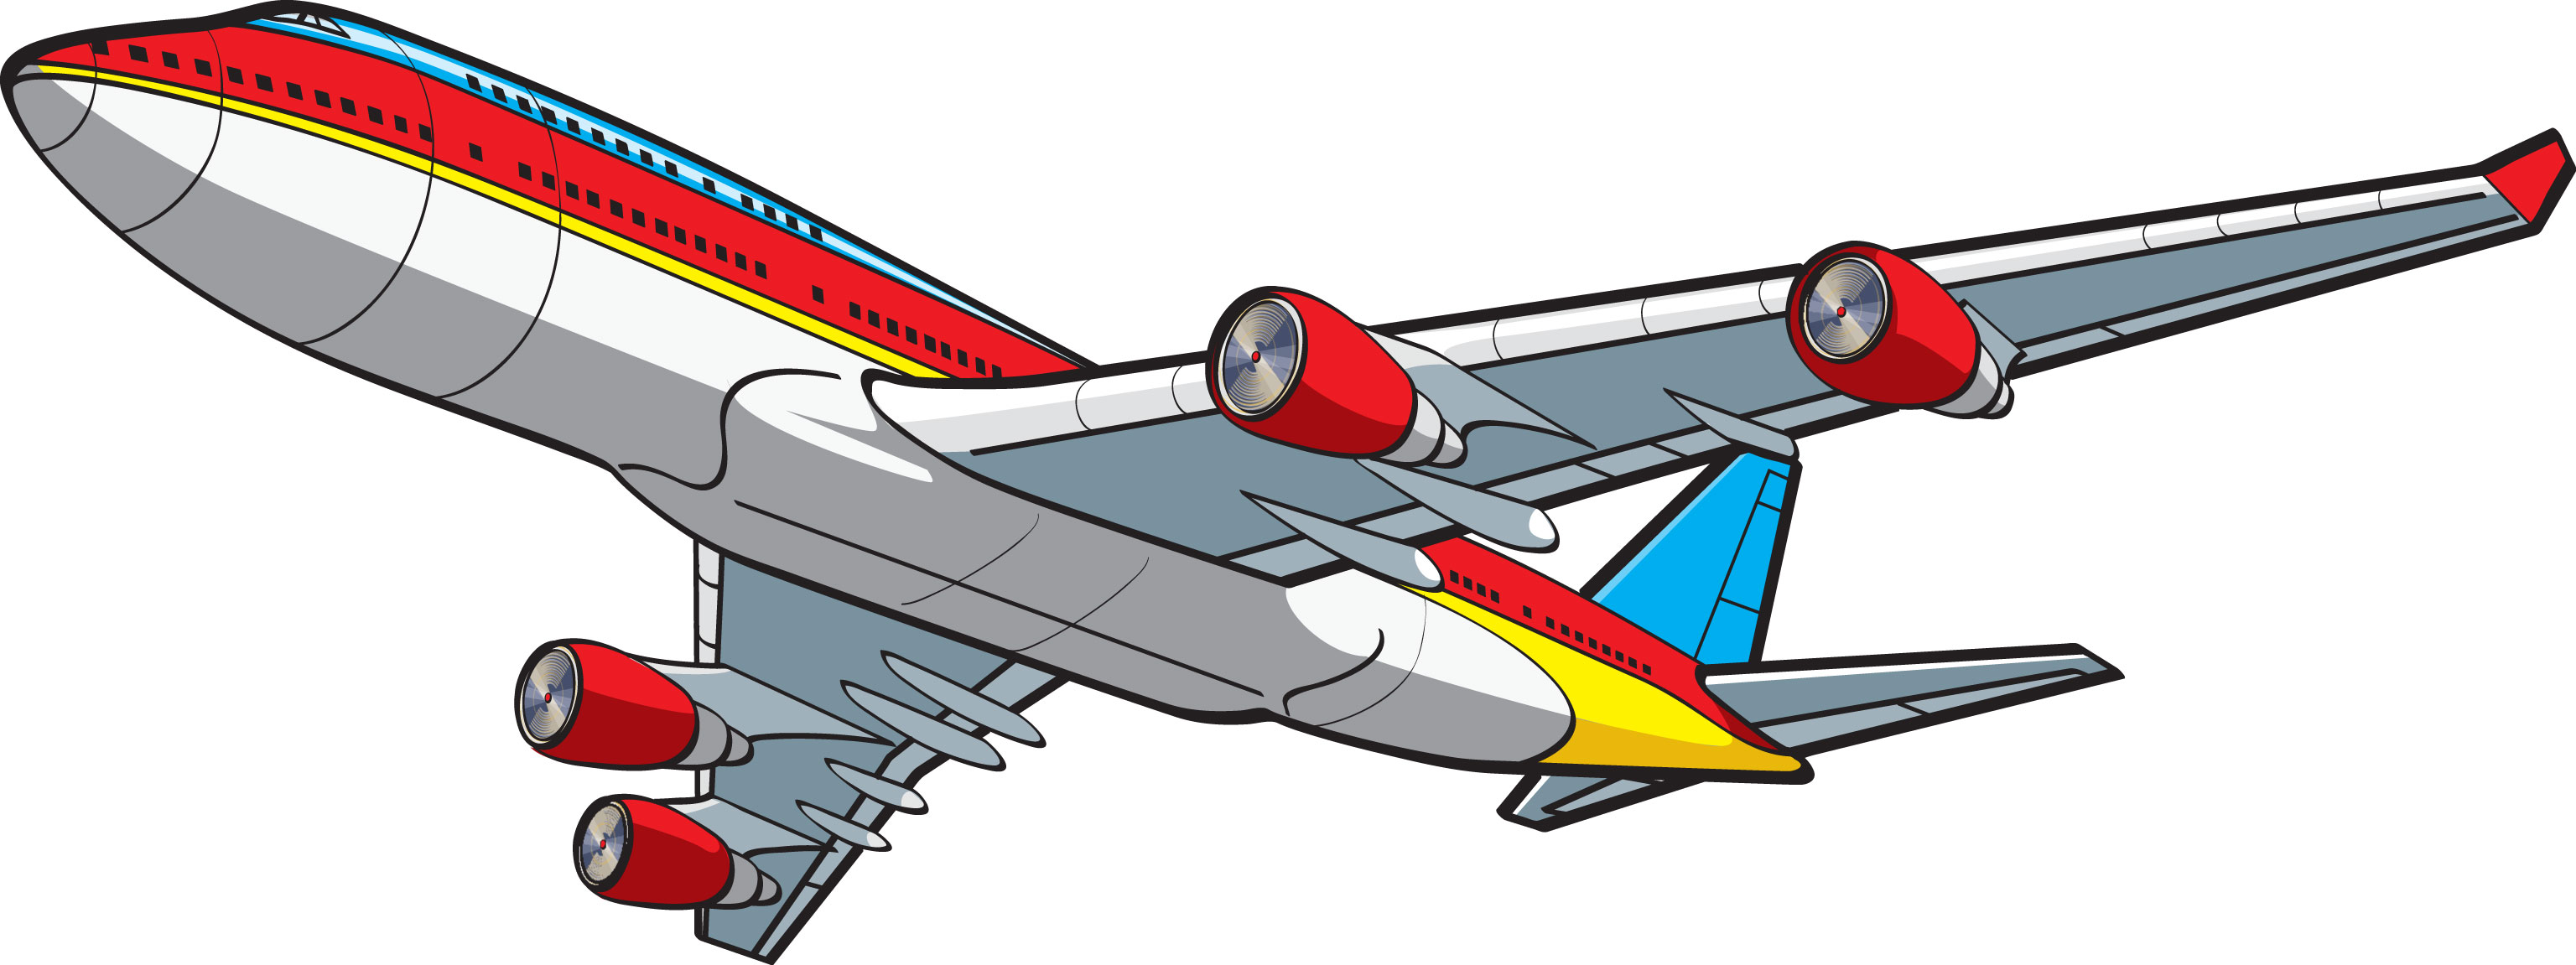 3072x1151 Innovation Idea Airplane Clipart Clip Art Images